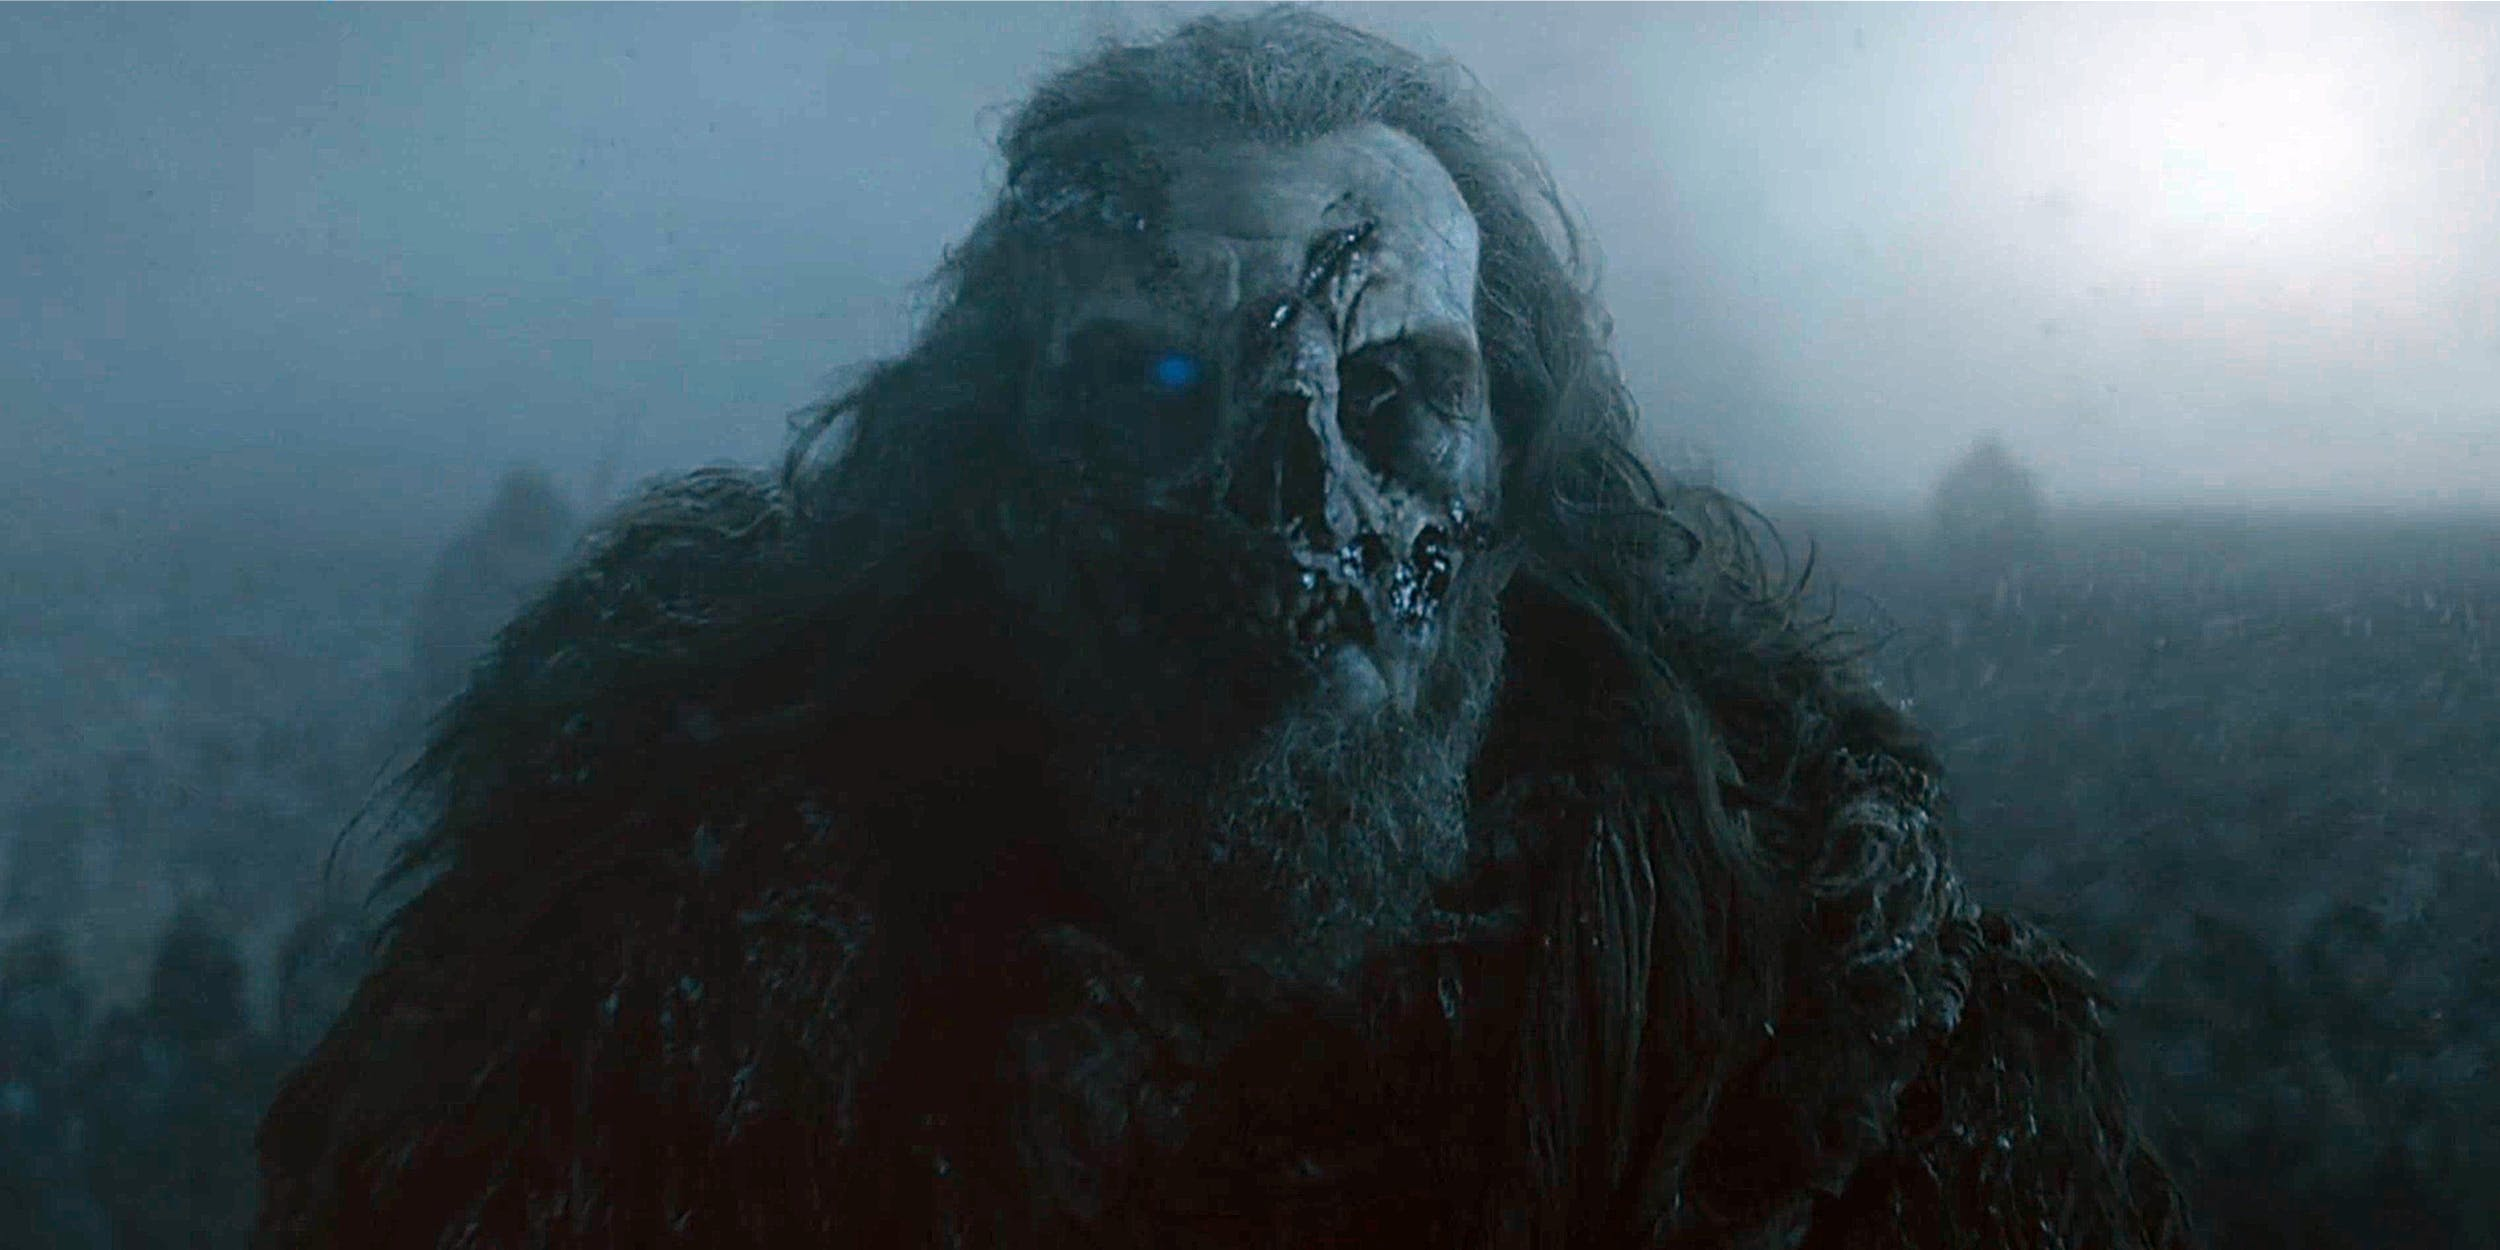 giant wight